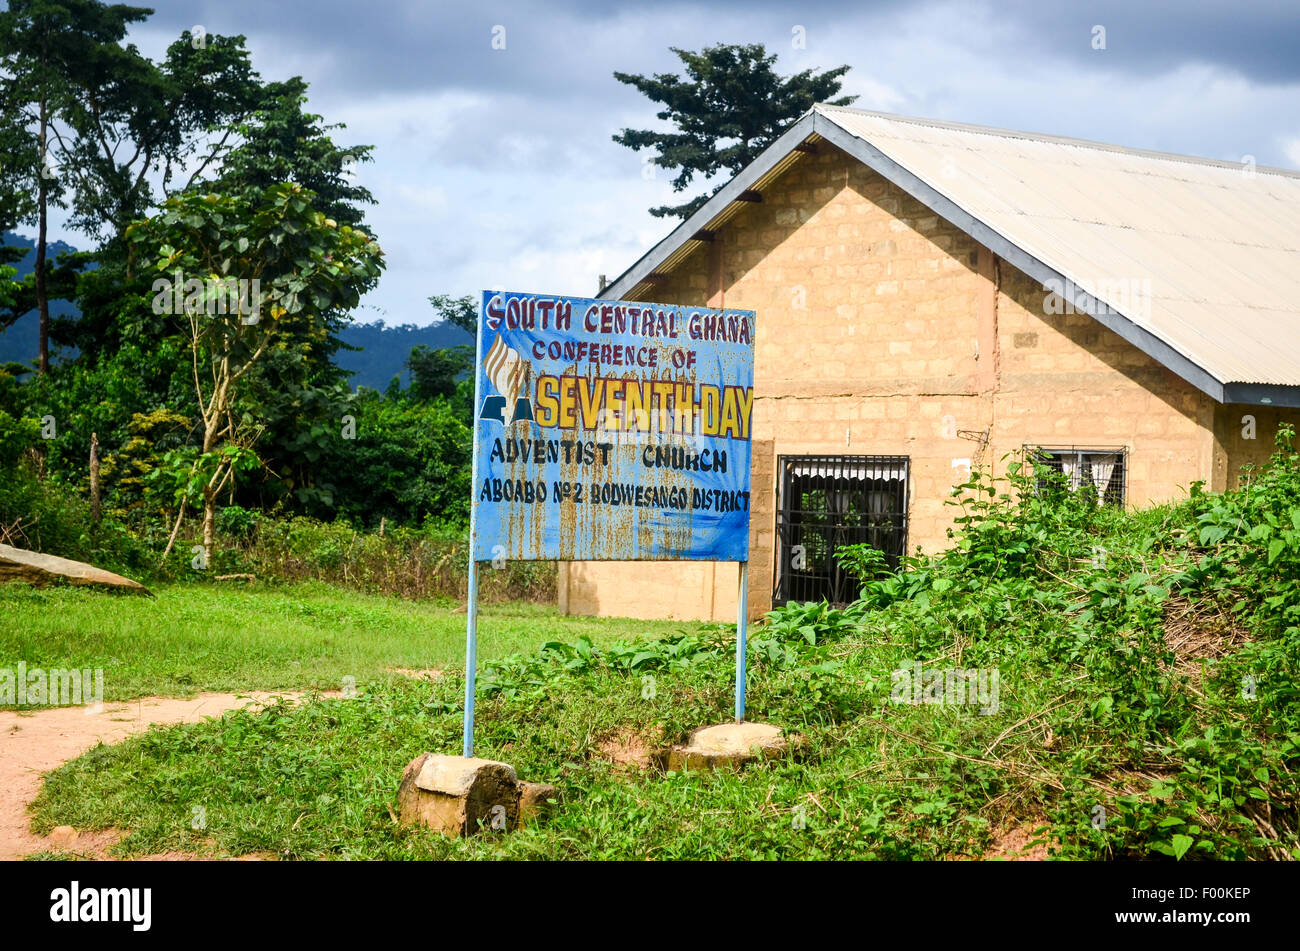 Seventh day adventist church - South Central Ghana conference - Stock Image